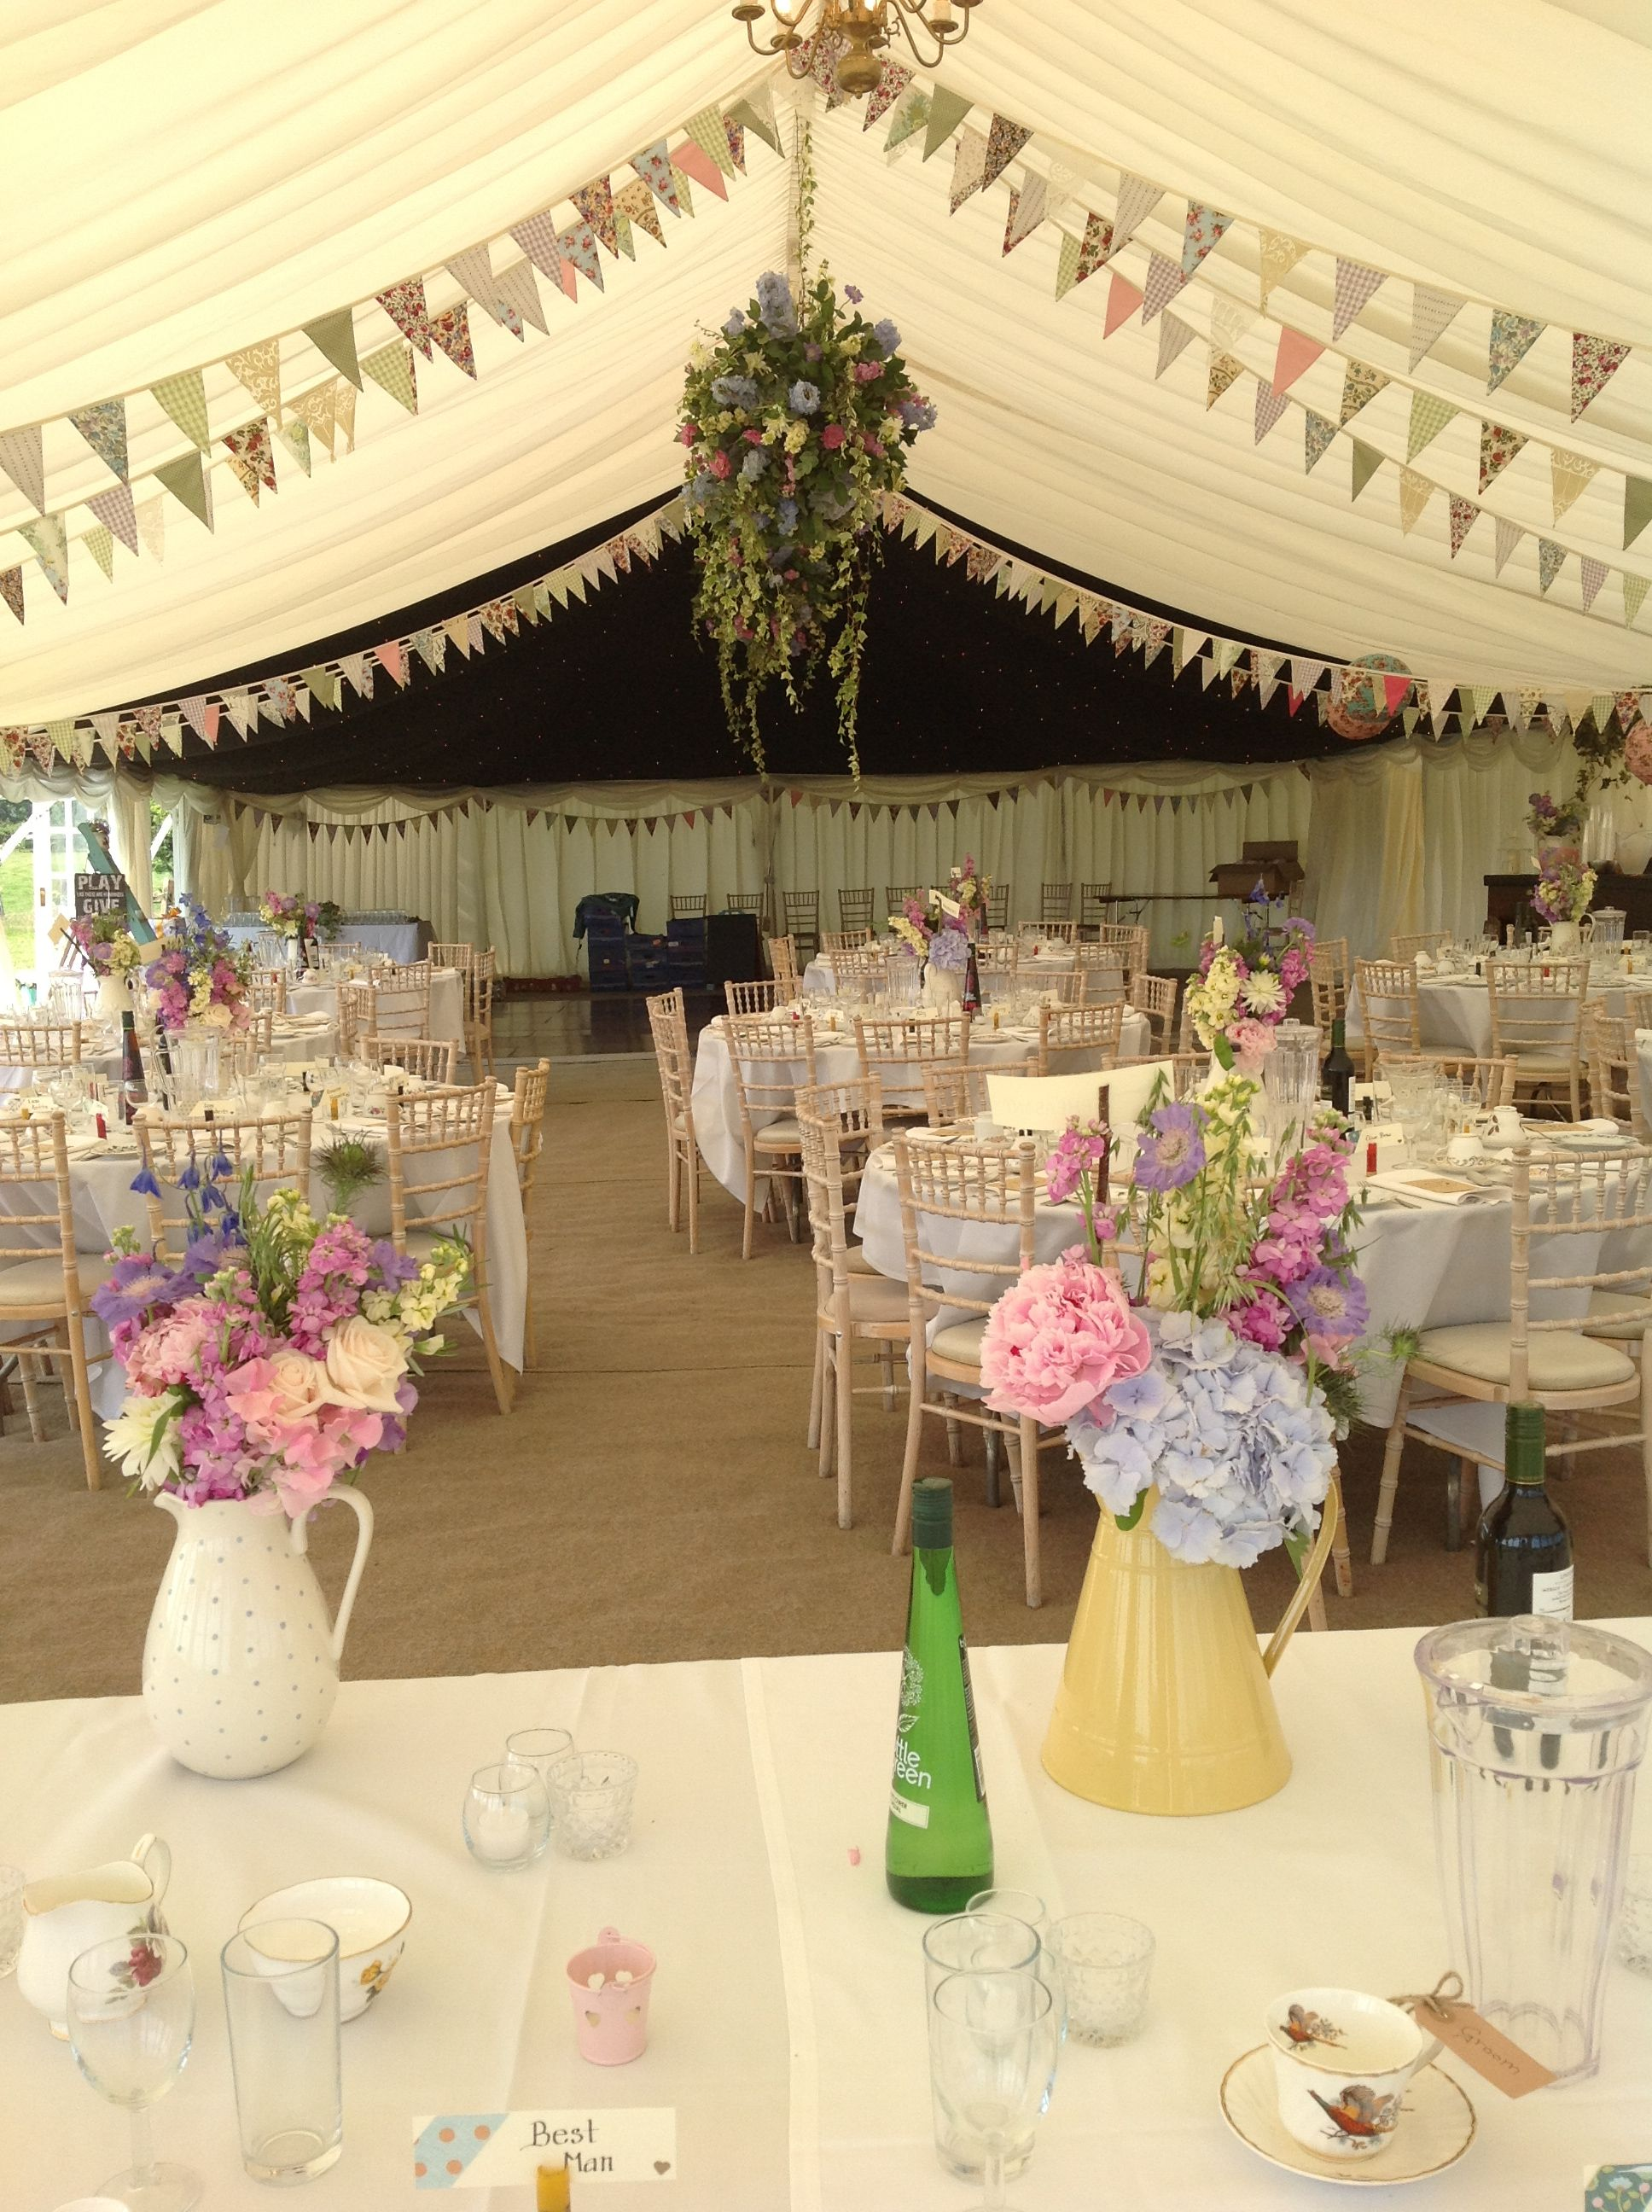 Summer flowers in pretty jugs look the part in this country wedding summer flowers in pretty jugs look the part in this country wedding marquee http junglespirit